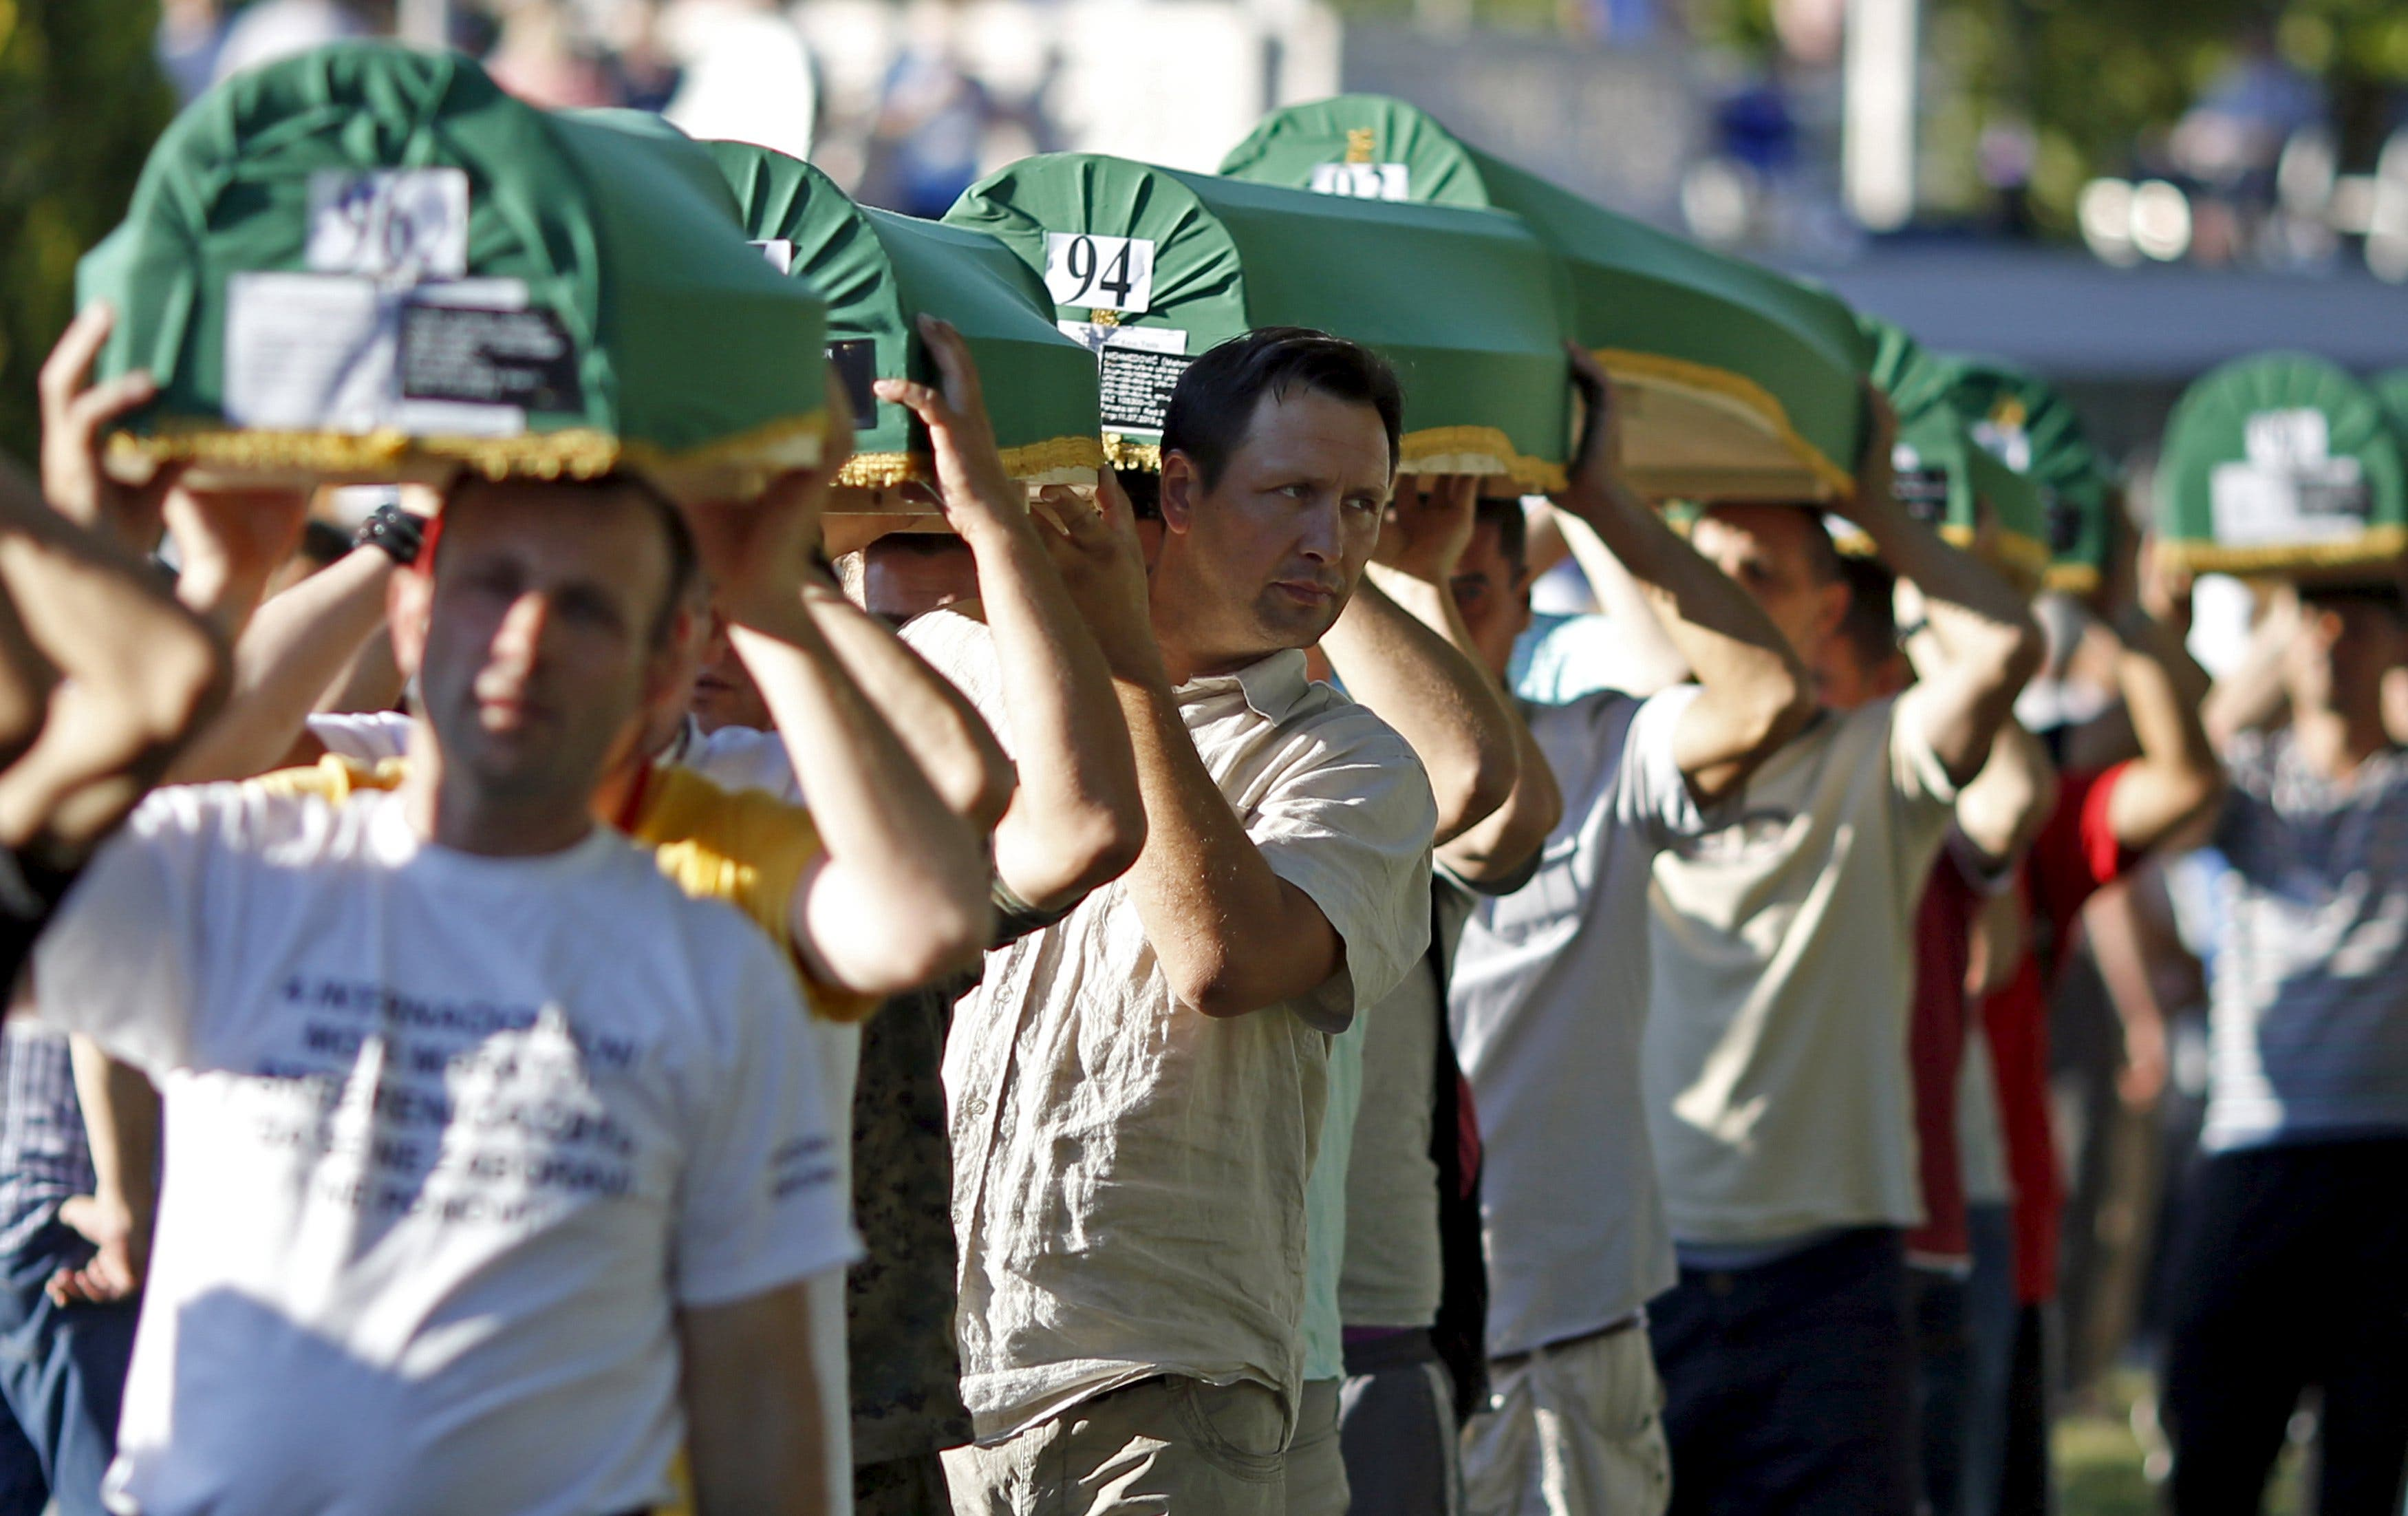 Bosnian Muslims carry coffins of their relatives who were victims of the 1995 Srebrenica massacre, at the Memorial Centre in Potocari, Bosnia and Herzegovina July 10, 2015. (Reuters)